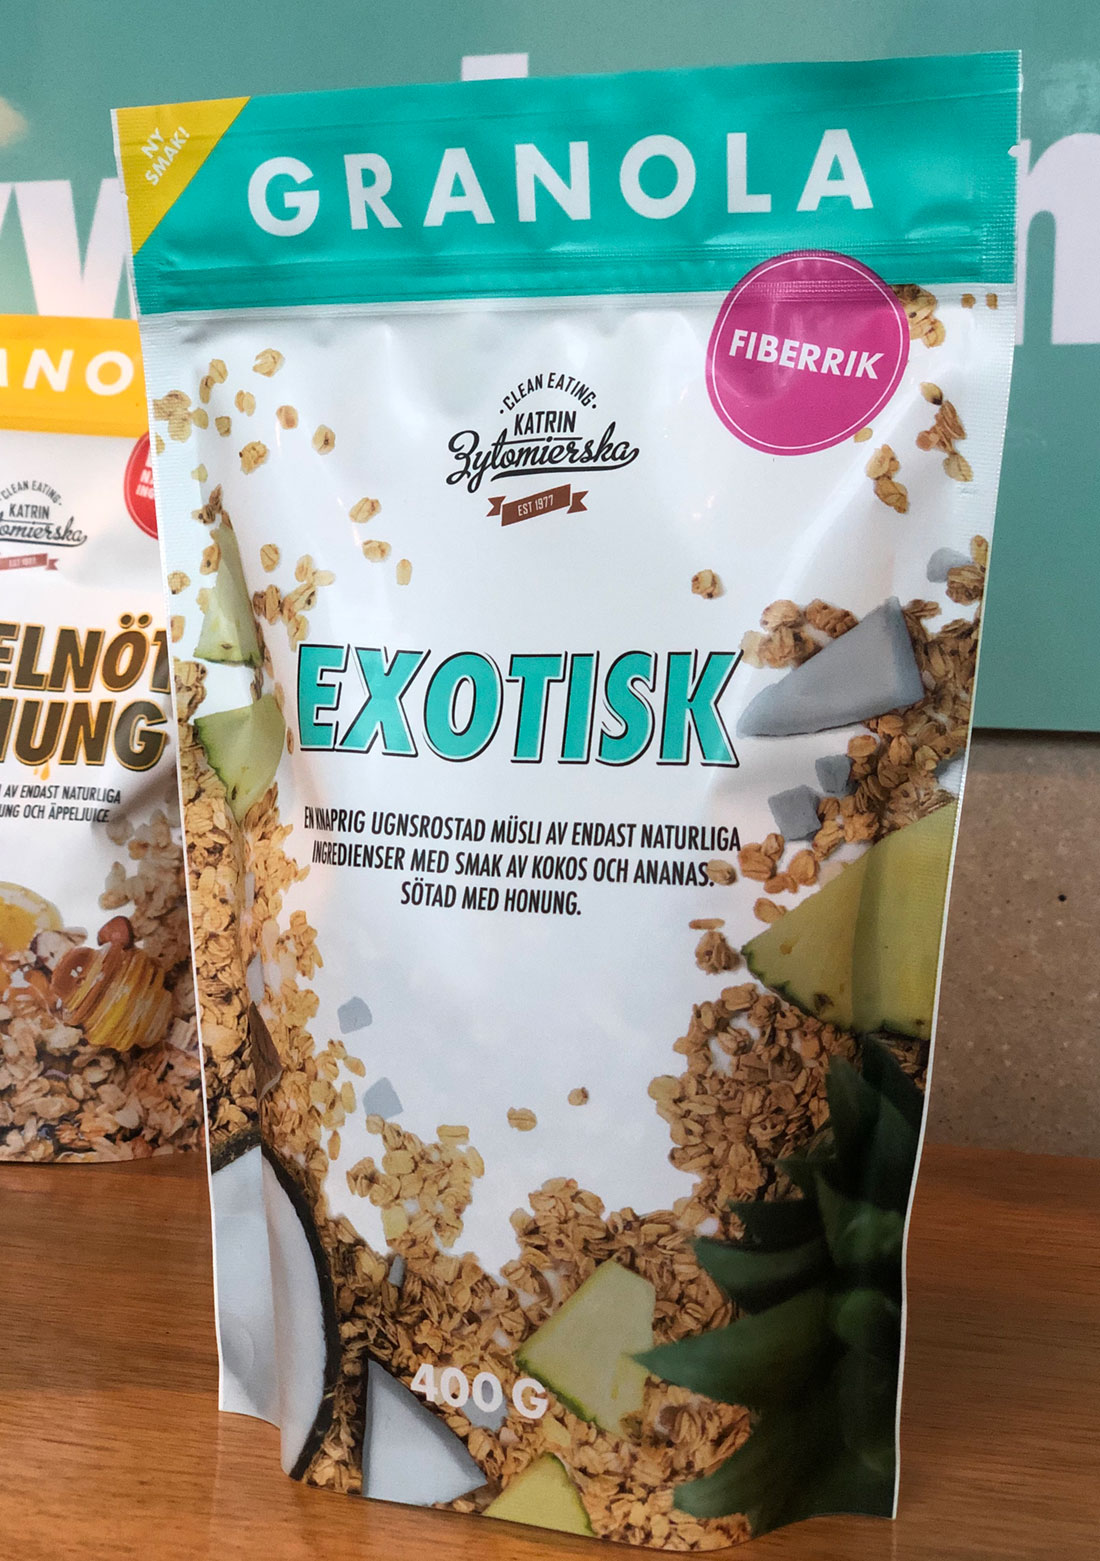 Clean-eating-granola-exotisk-by-Ronny-Bergfeldt.jpg